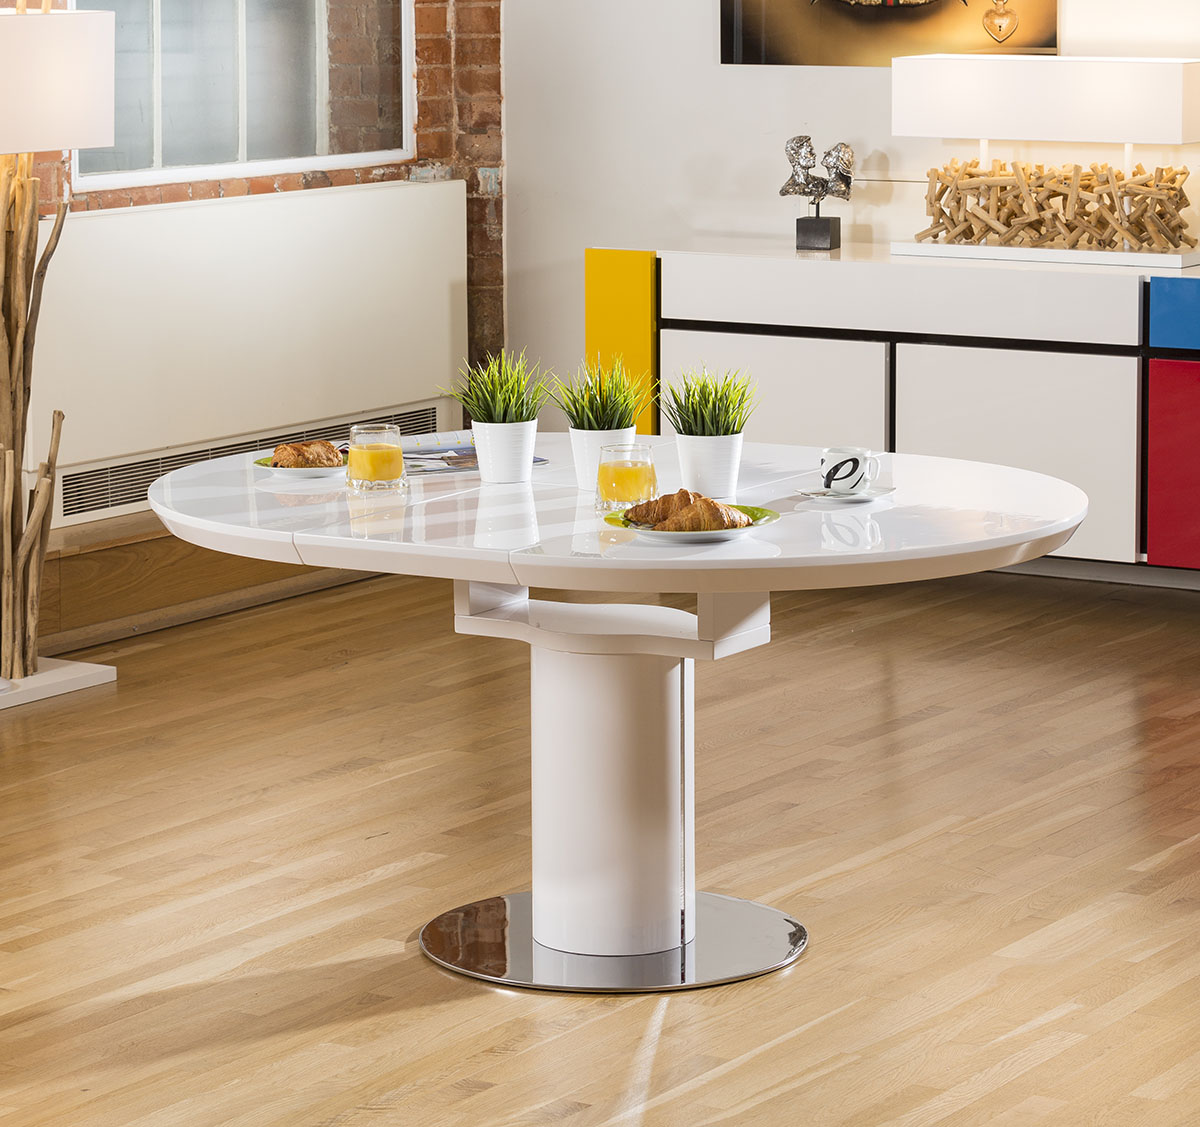 Extending Round Oval Dining Set White Gloss Table 6 Grey